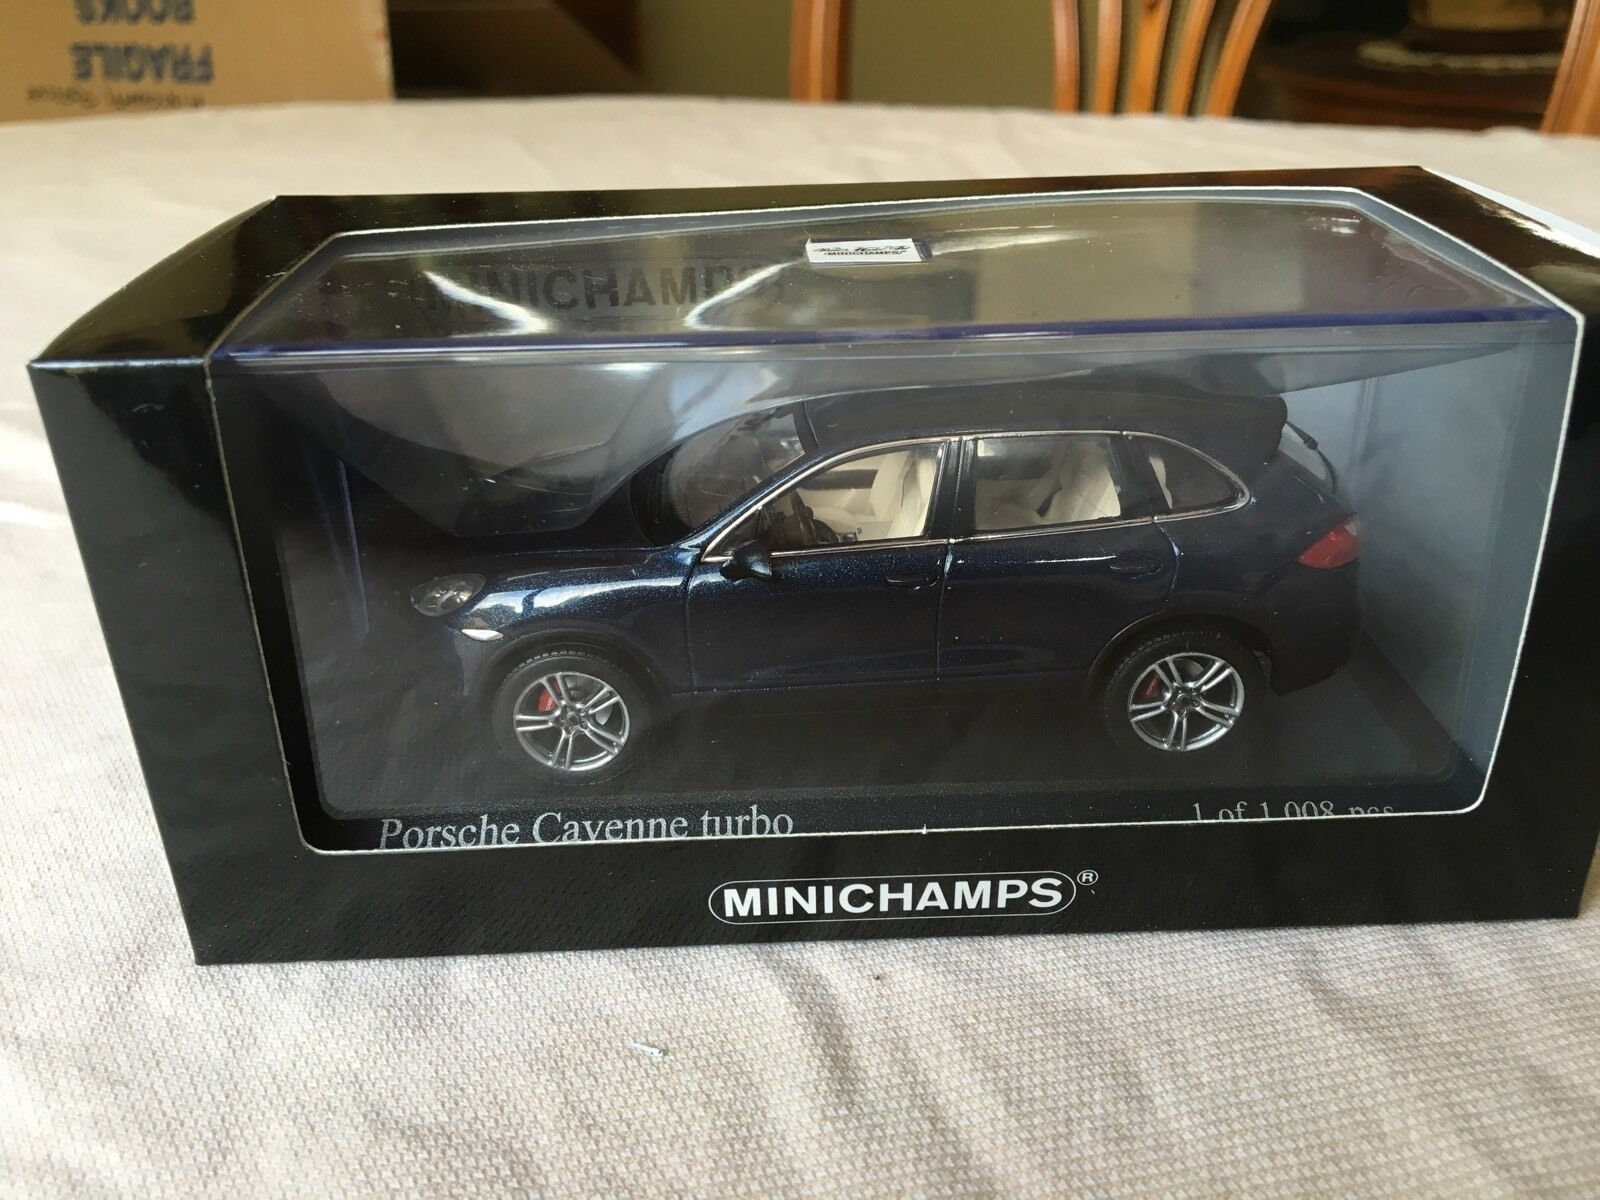 Minichamps Porsche 911 Cayenne Turbo.2010 in Dark bluee Met, 1 43 scale diecast